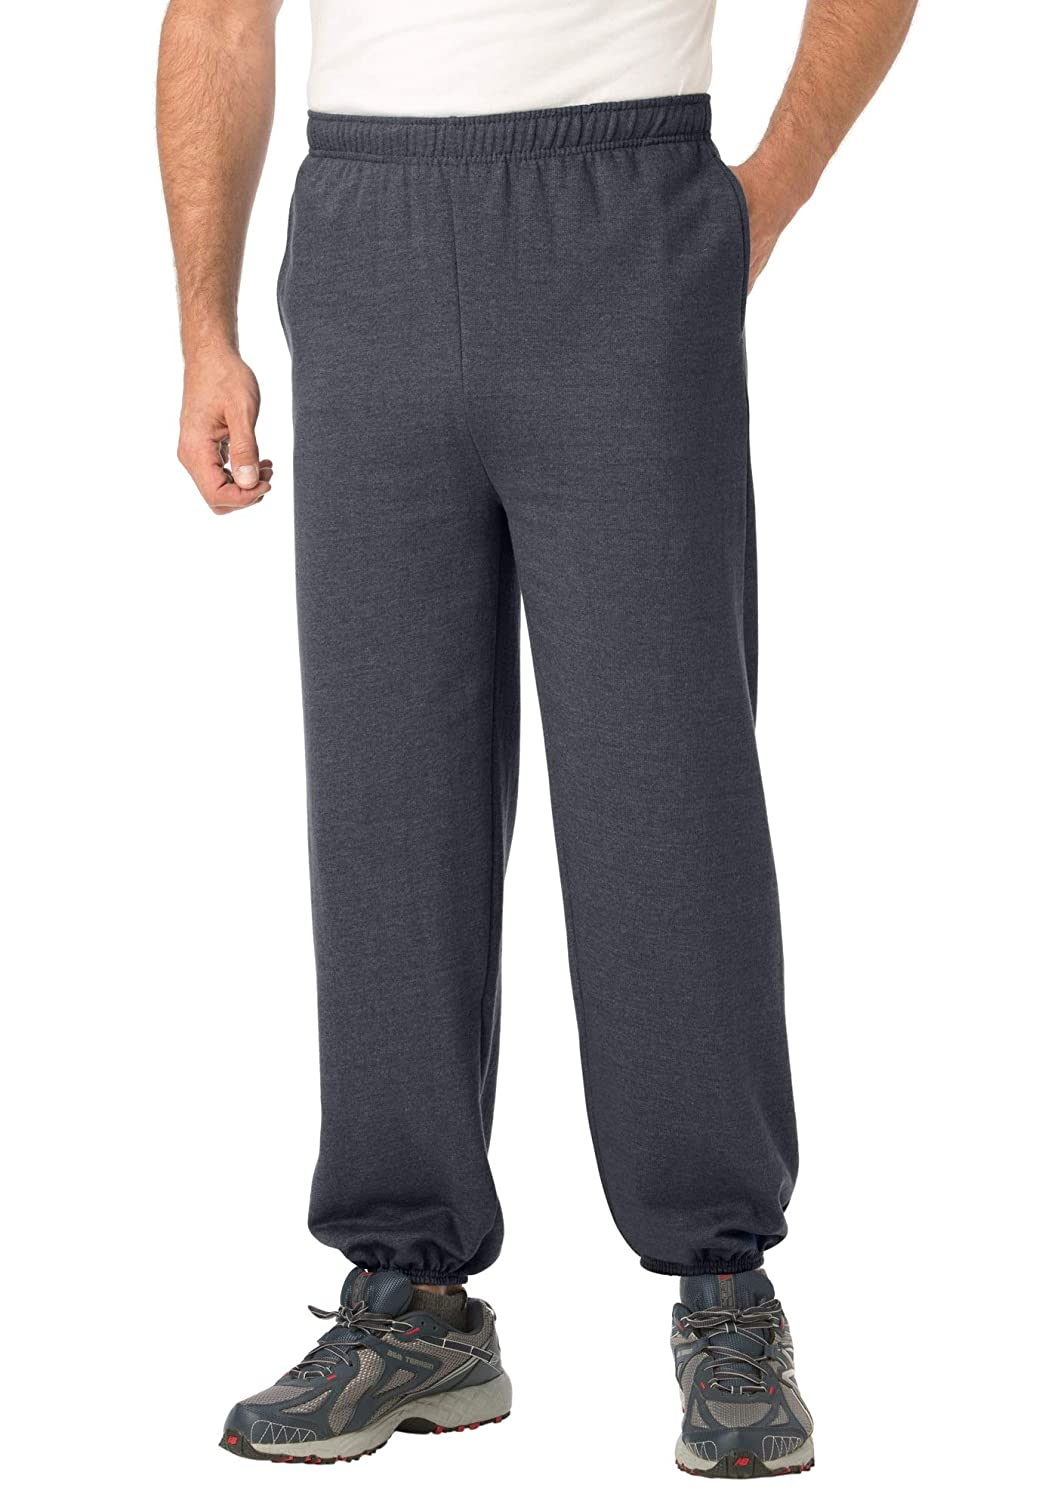 KingSize Men's Big & Tall Fleece Sweatpants With Elastic Cuff